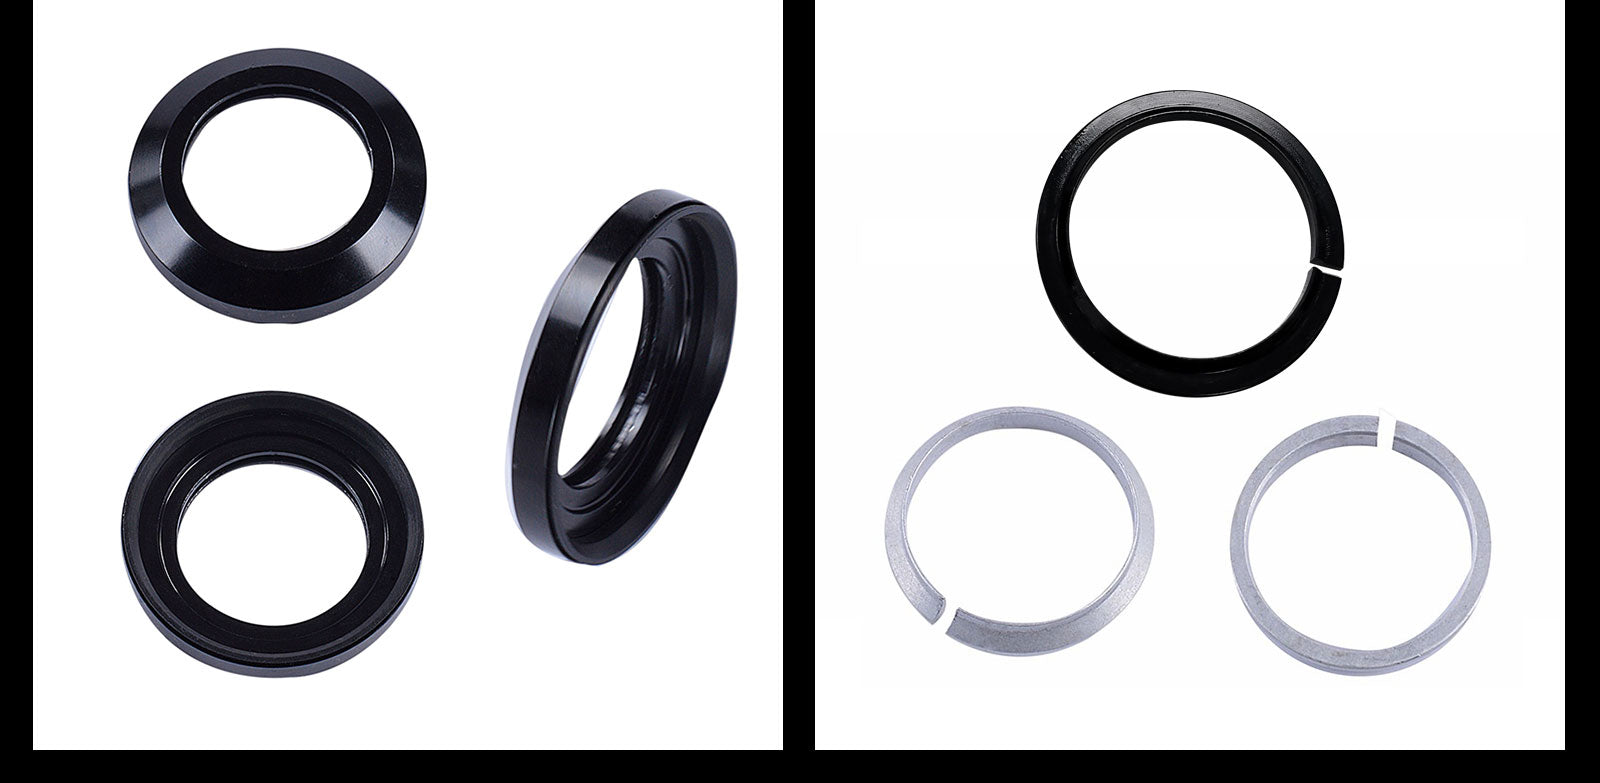 Bike Frame 1-1/8inch - 1-1/2inch Tapered Headset Details 03